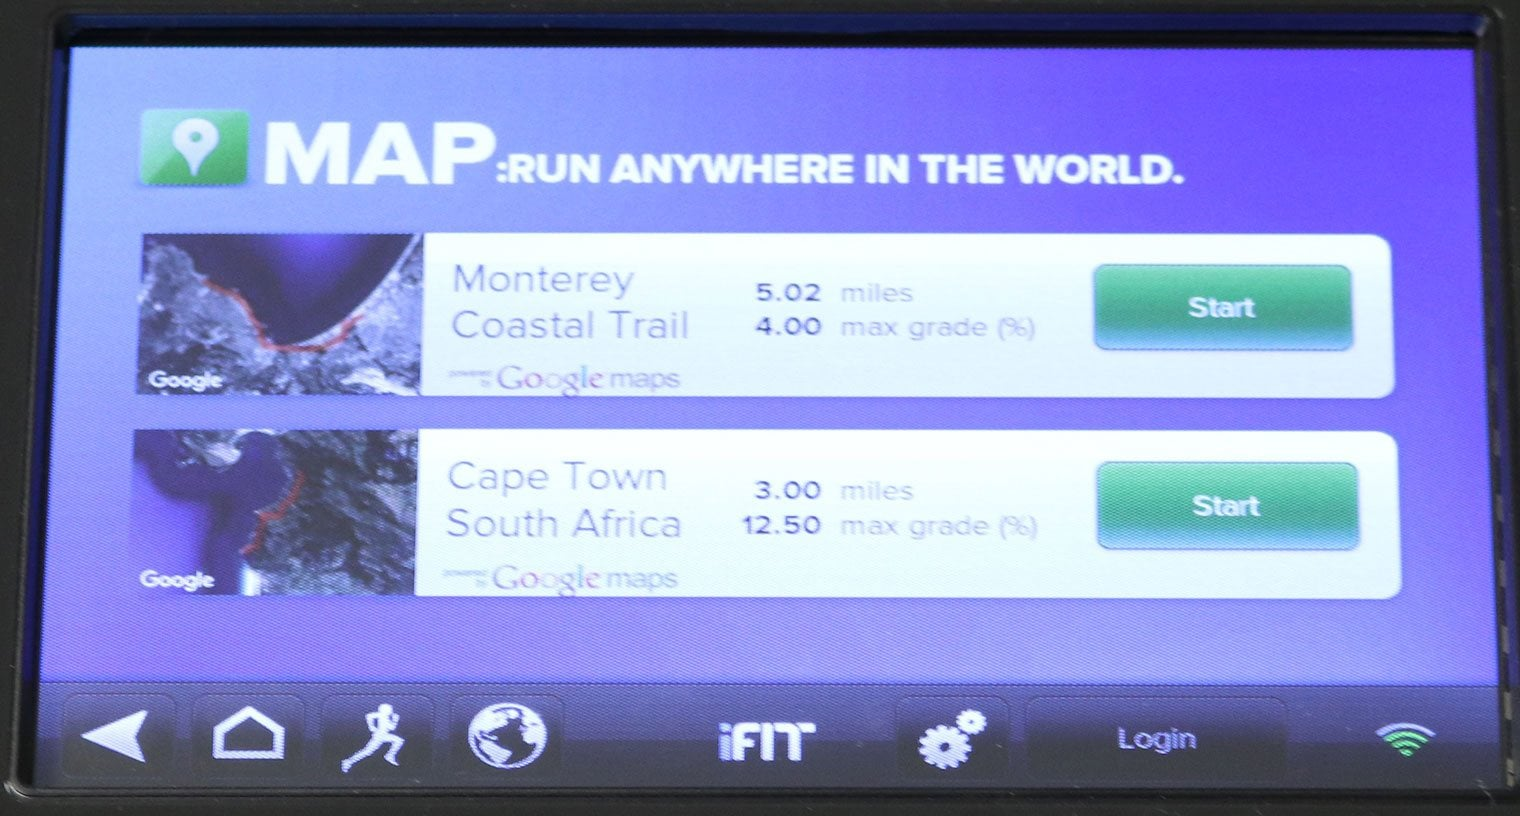 iFit Screen - Run Anywhere via Google Maps